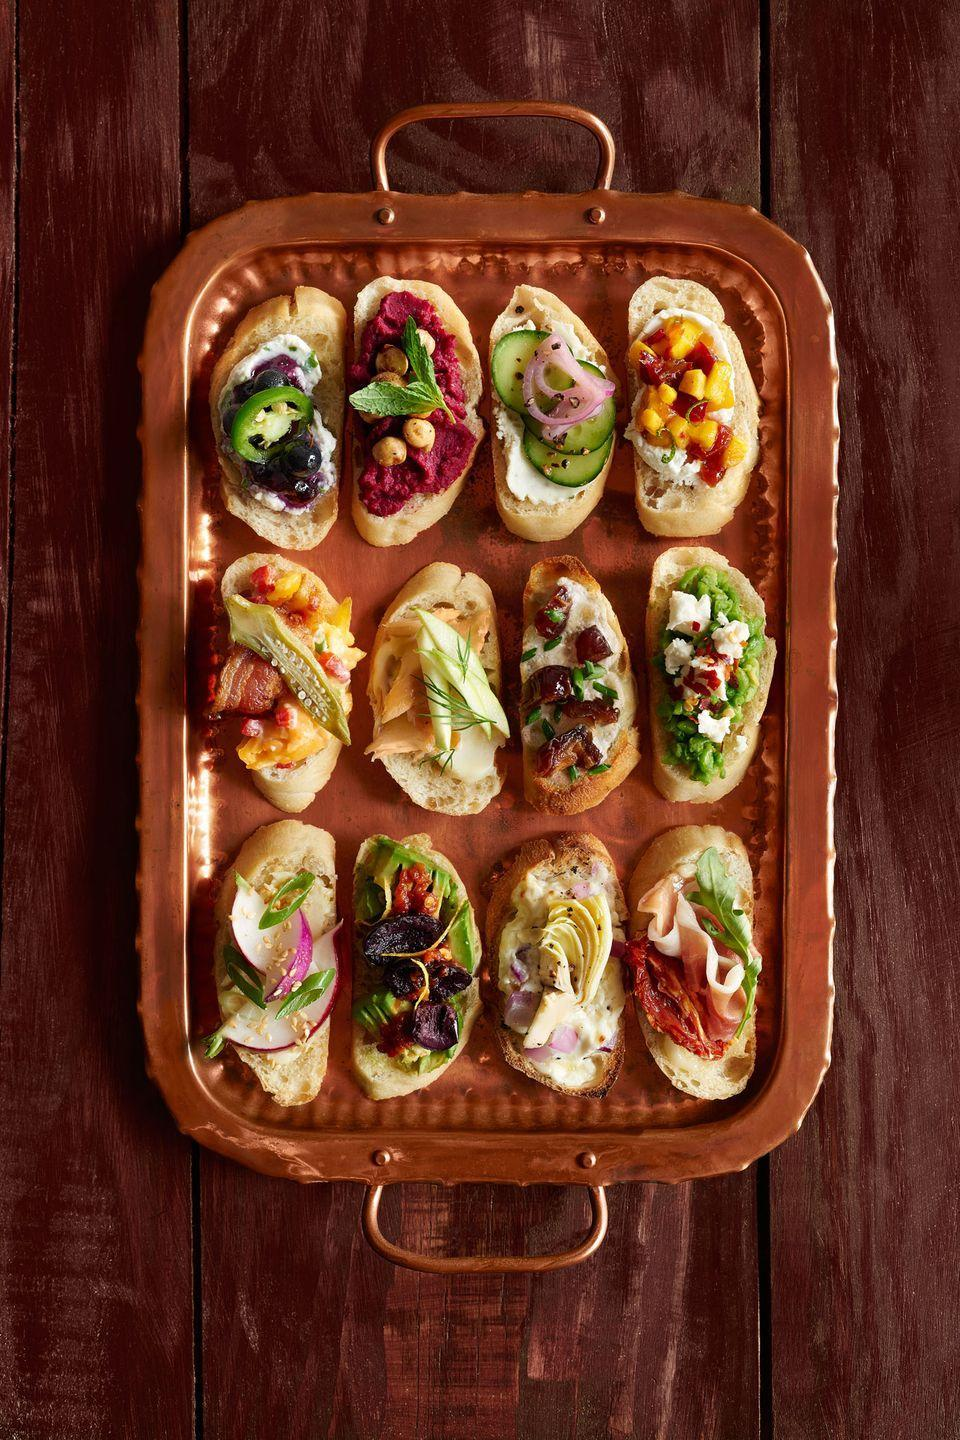 """<p>This platter of easy two-bite crostini will give guests something to graze on as you fiddle with the main course. Choose your favorite of our 12 recipes, or make them all! </p><p><strong><a href=""""https://www.countryliving.com/food-drinks/g2706/crostini-thanksgiving-recipes/"""" rel=""""nofollow noopener"""" target=""""_blank"""" data-ylk=""""slk:Get the recipe"""" class=""""link rapid-noclick-resp"""">Get the recipe</a>.</strong></p>"""